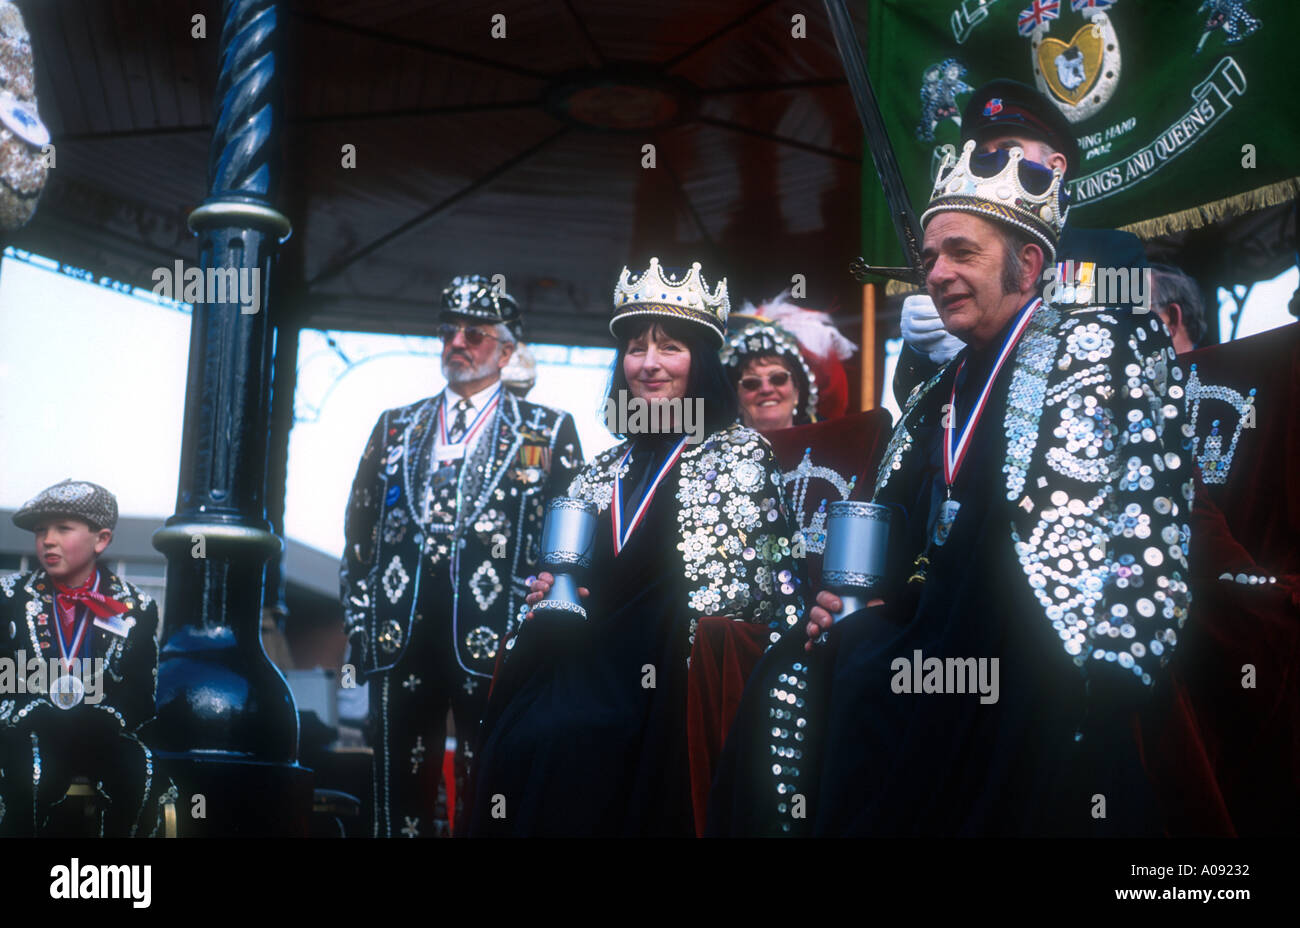 Coronation of London s Honourary Pearly King and Queen of Lancashire in Burnley England - Stock Image